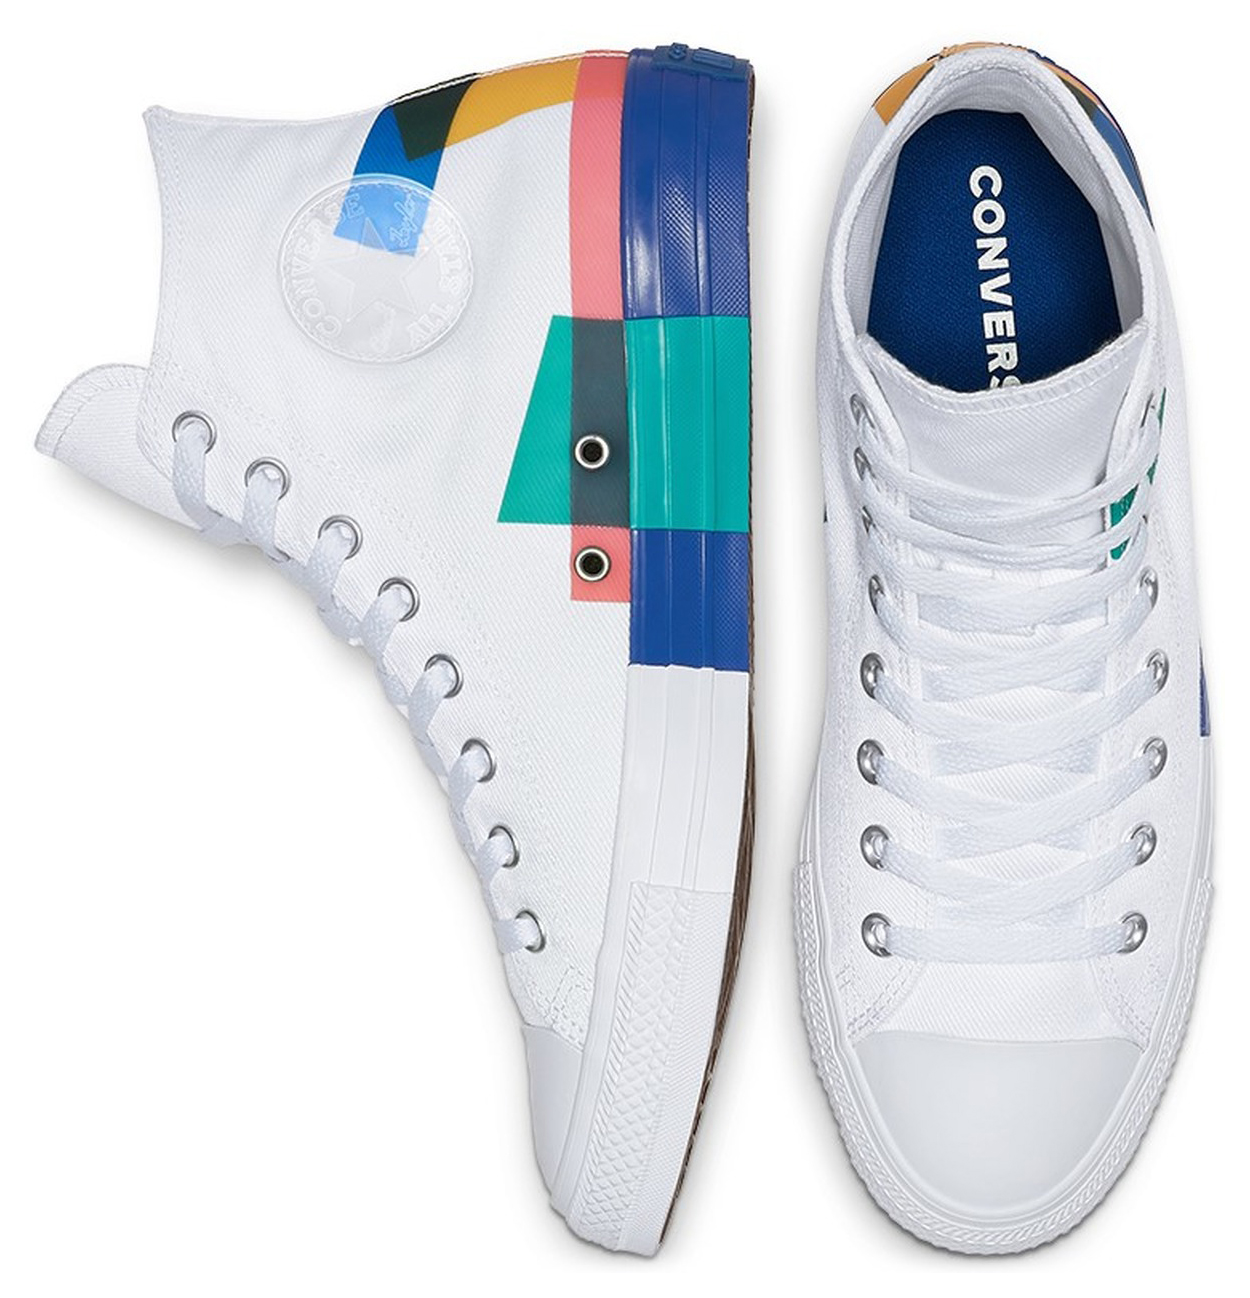 Converse biele unisex tenisky Chuck Taylor All Star White/Blue/Enamel Red